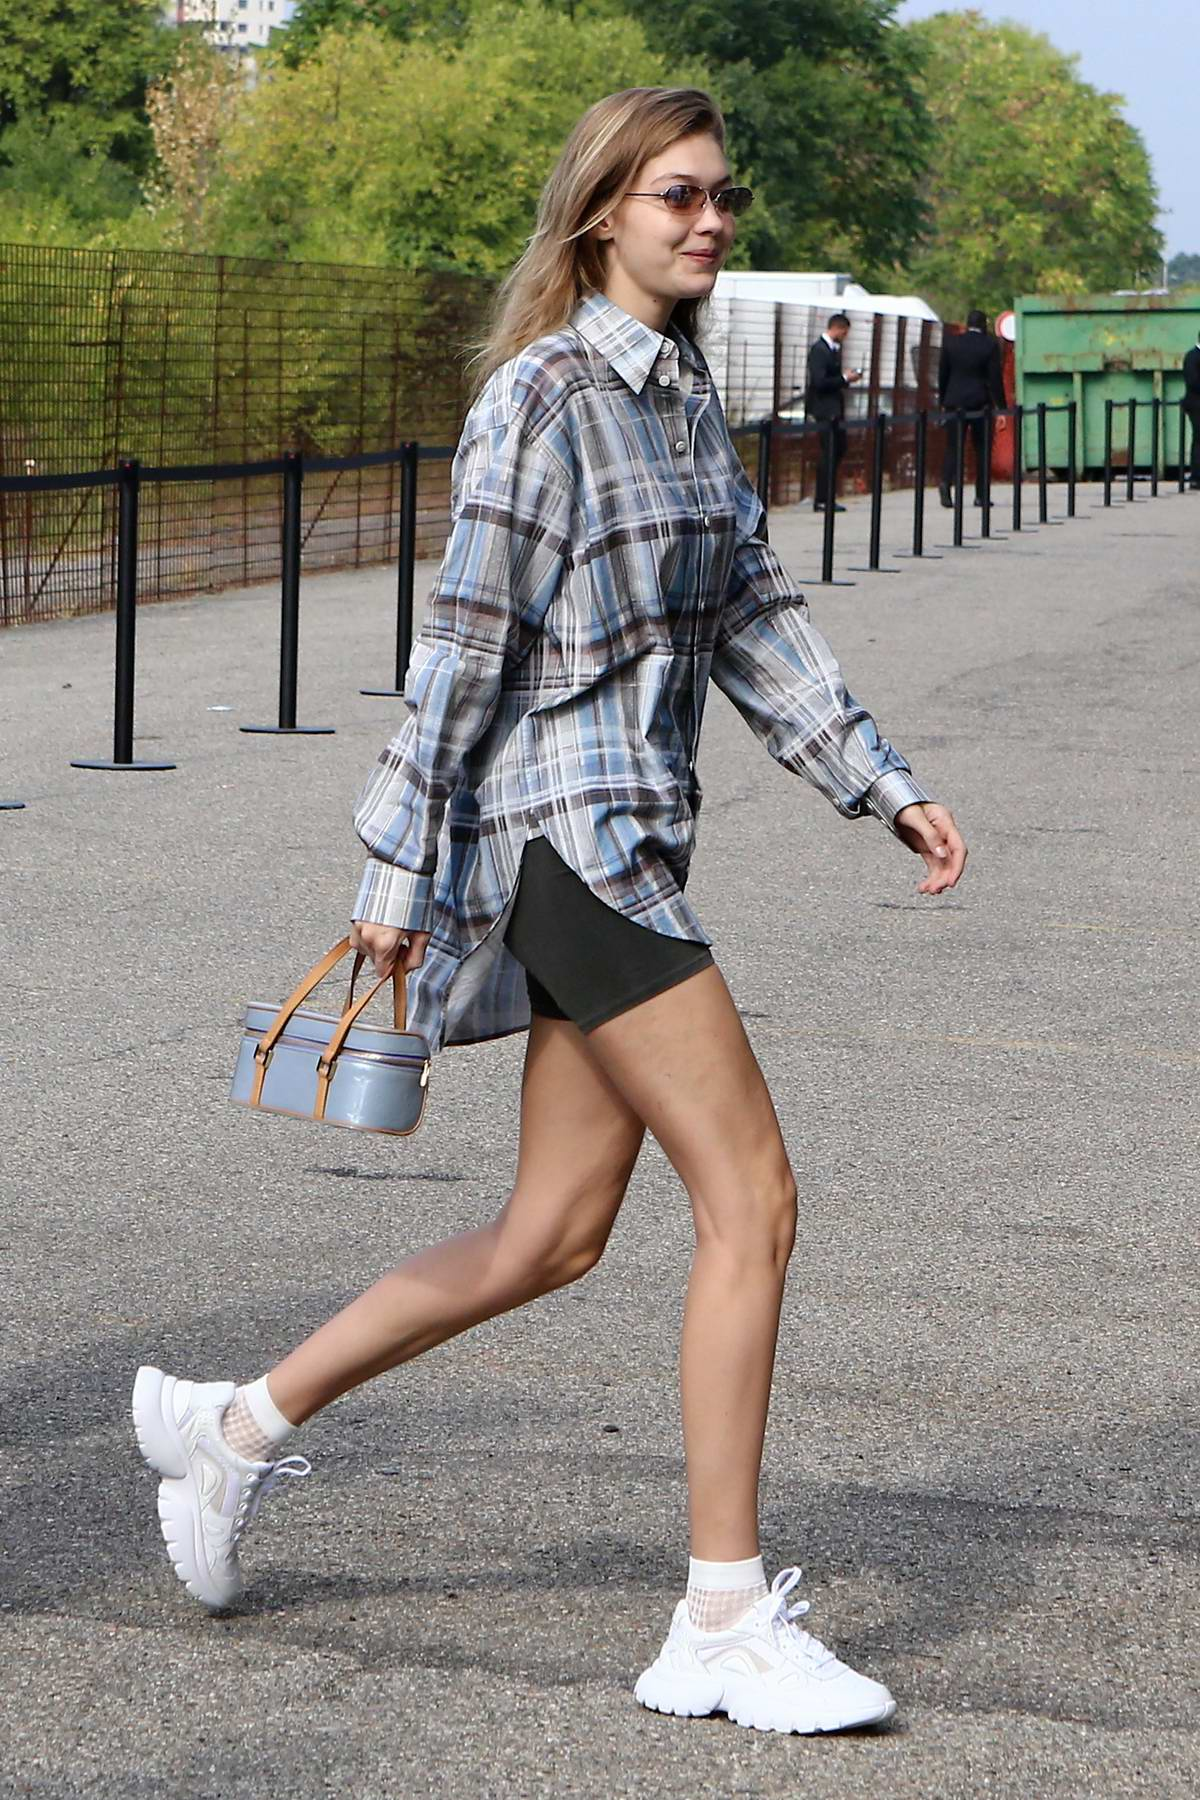 Gigi Hadid spotted in plaid shirt and bikers shorts as she arrives at the Roberto Cavalli Fashion Show During Milan Fashion Week in Milan, Italy